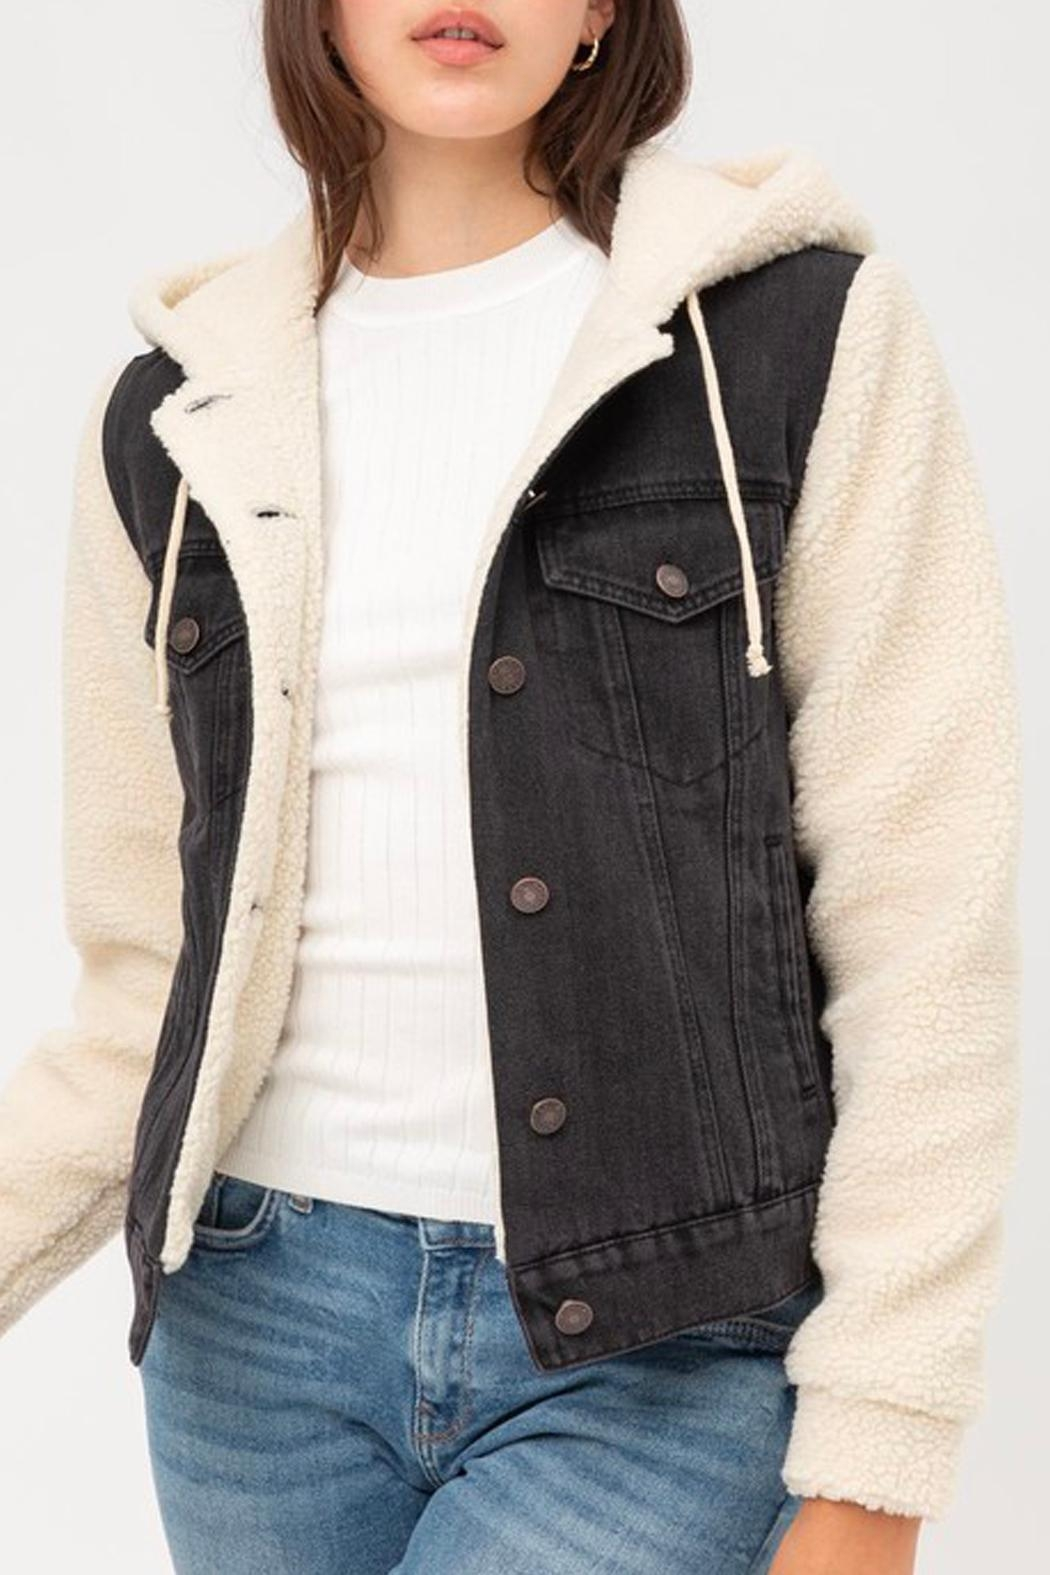 Wild Lilies Jewelry  Denim Sherpa Jacket - Main Image